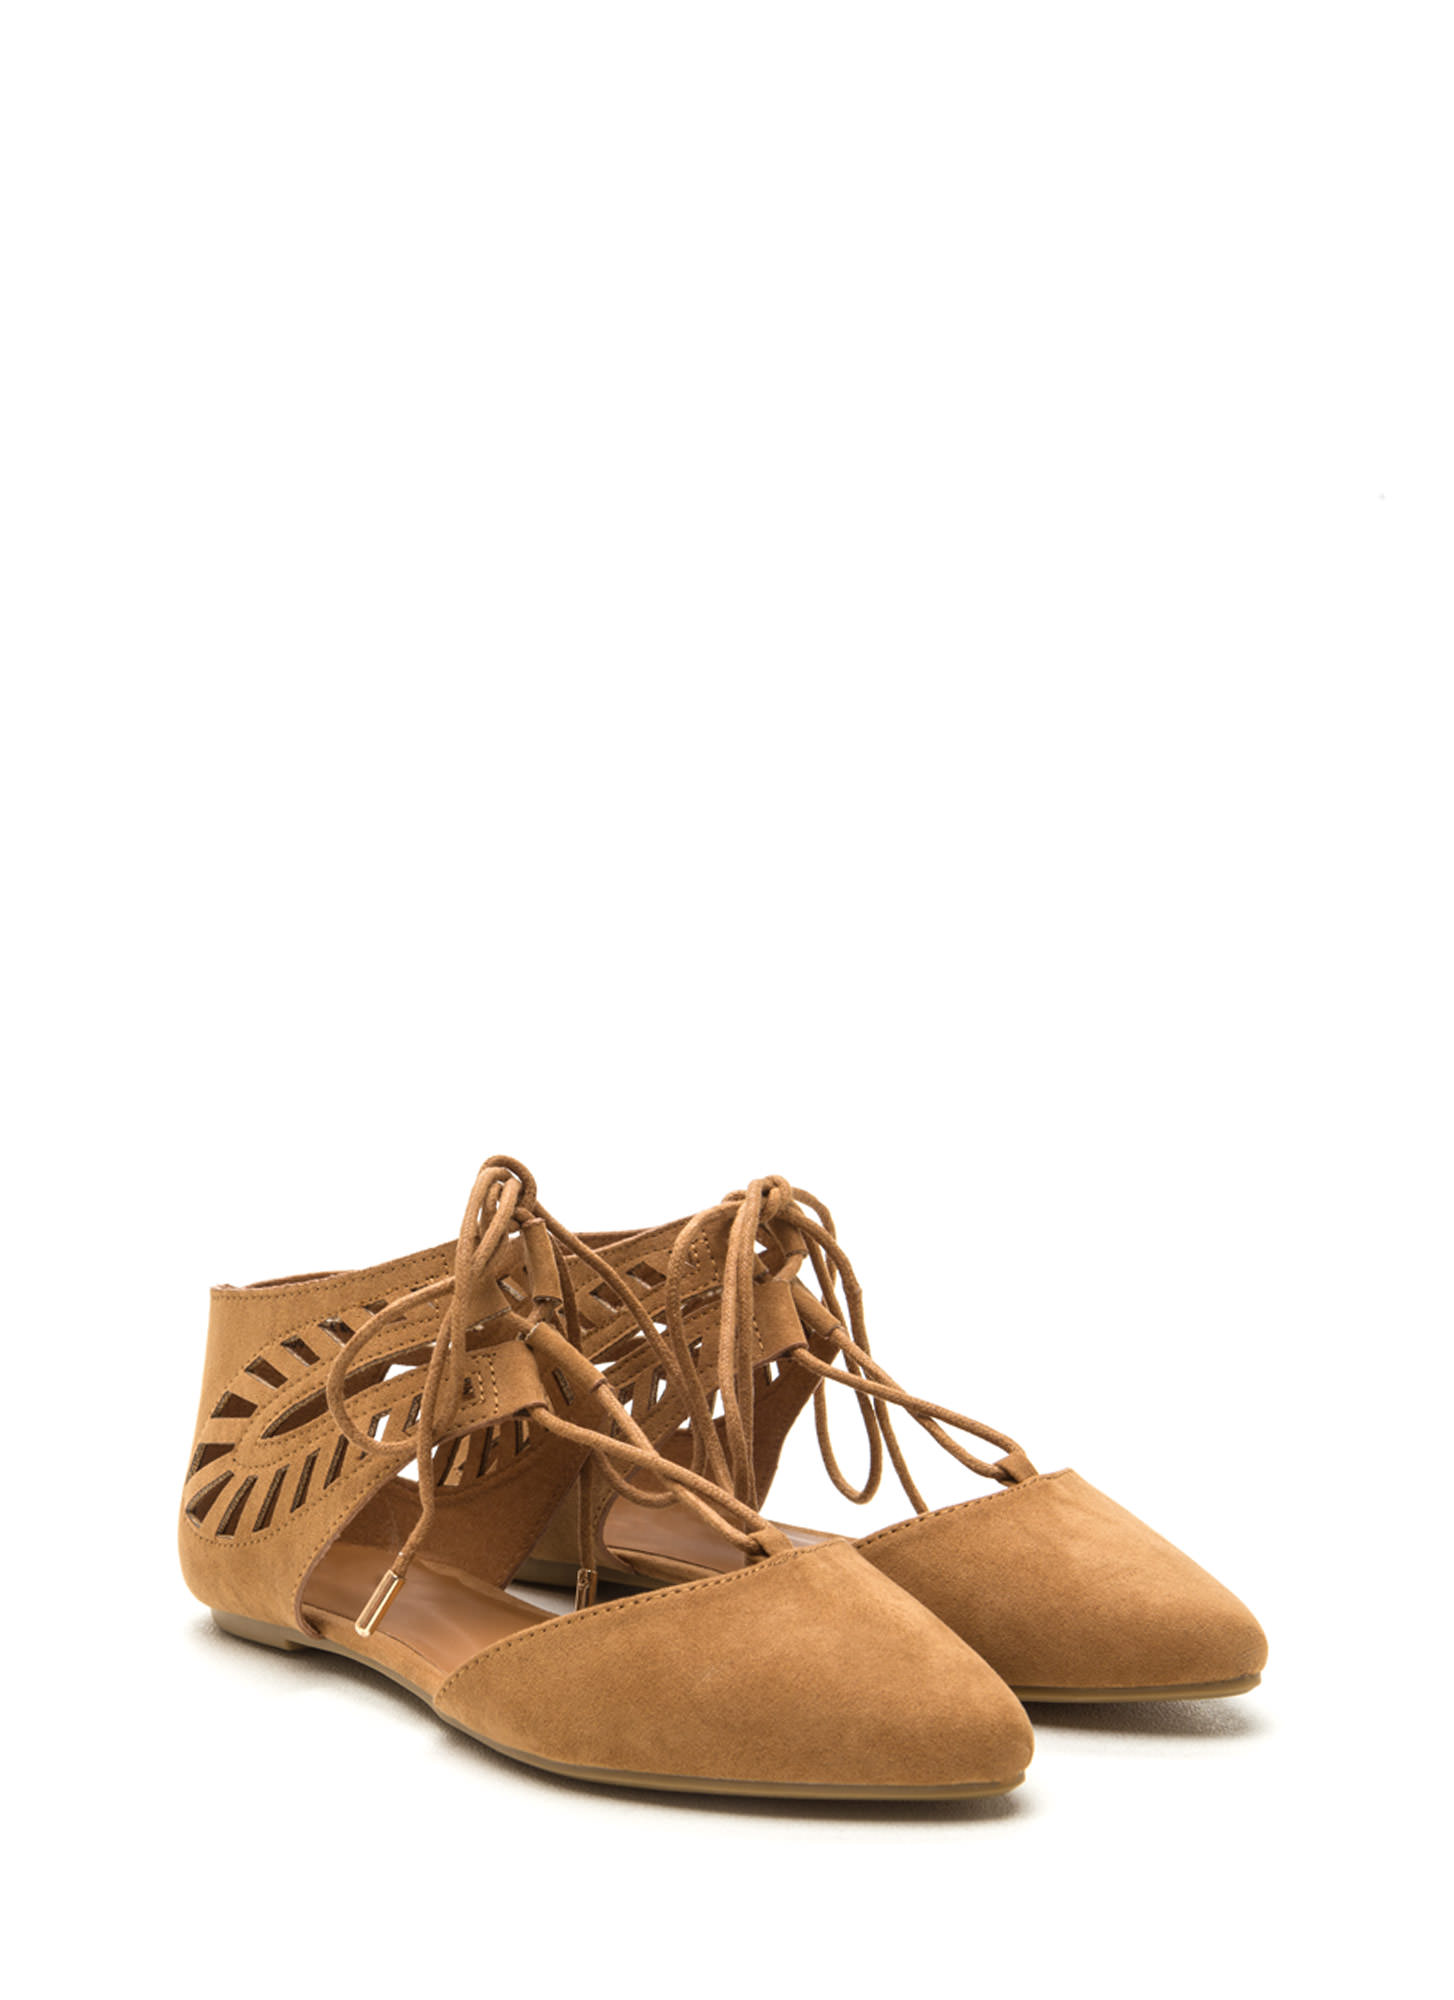 Laced-Up Lover Faux Suede Flats TAN